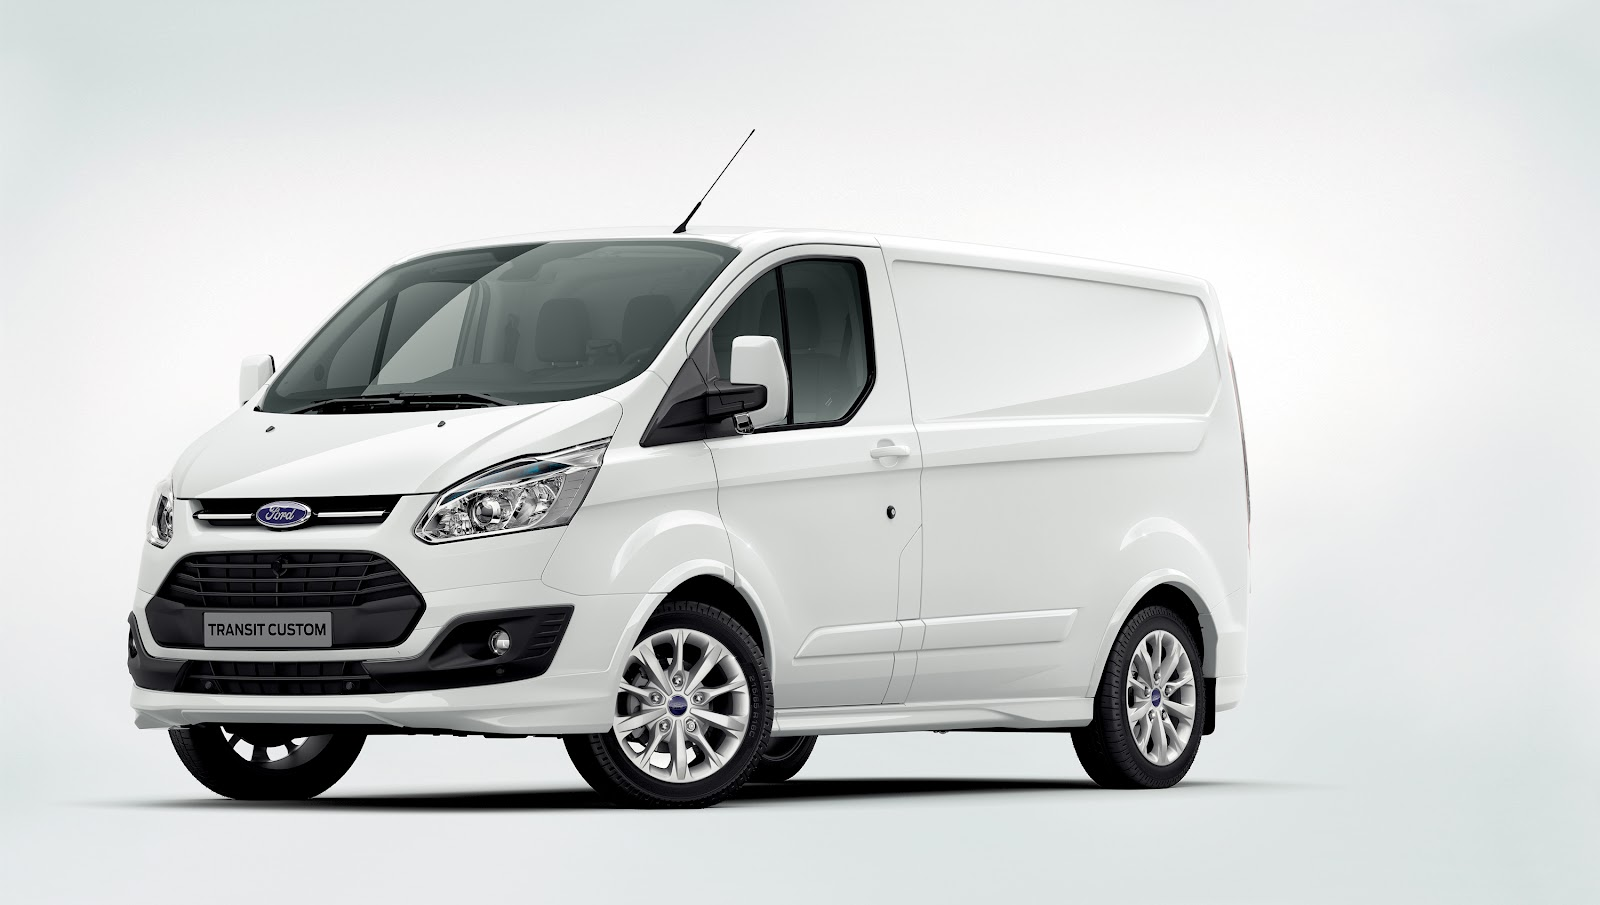 Ford_Transit_Custom_header.jpg